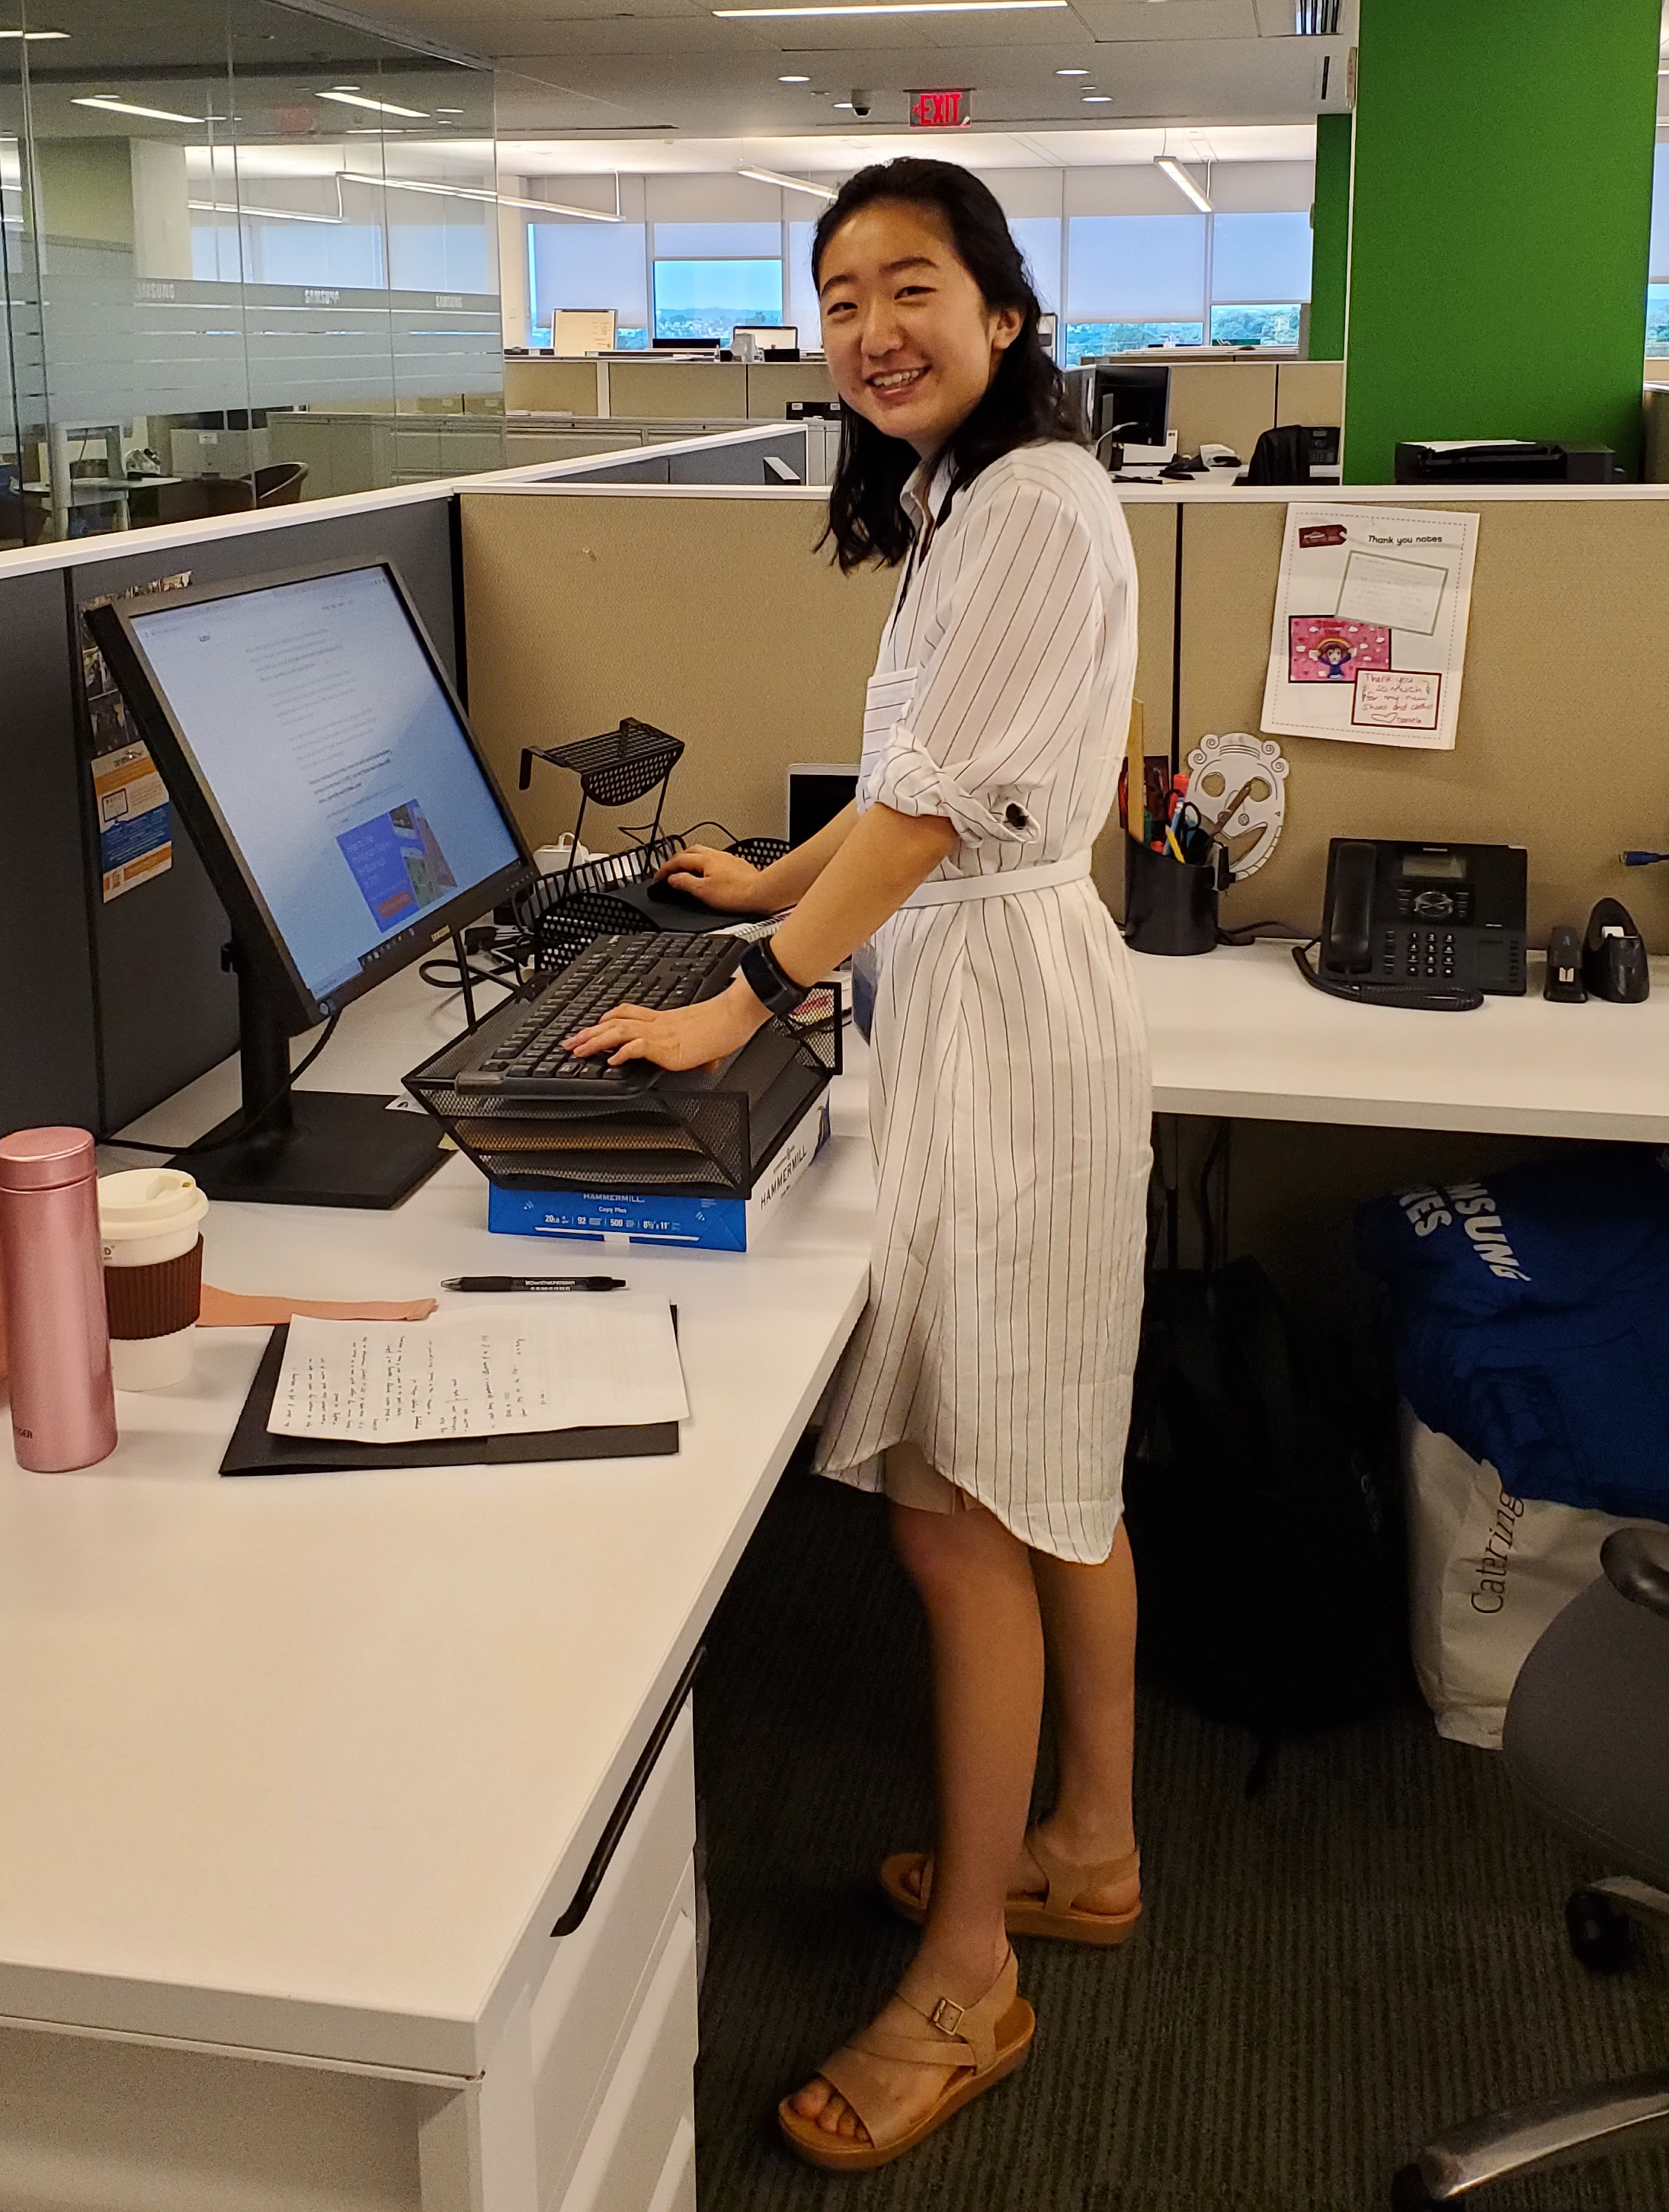 Jane Song is an intern for the Corporate Citizenship Department